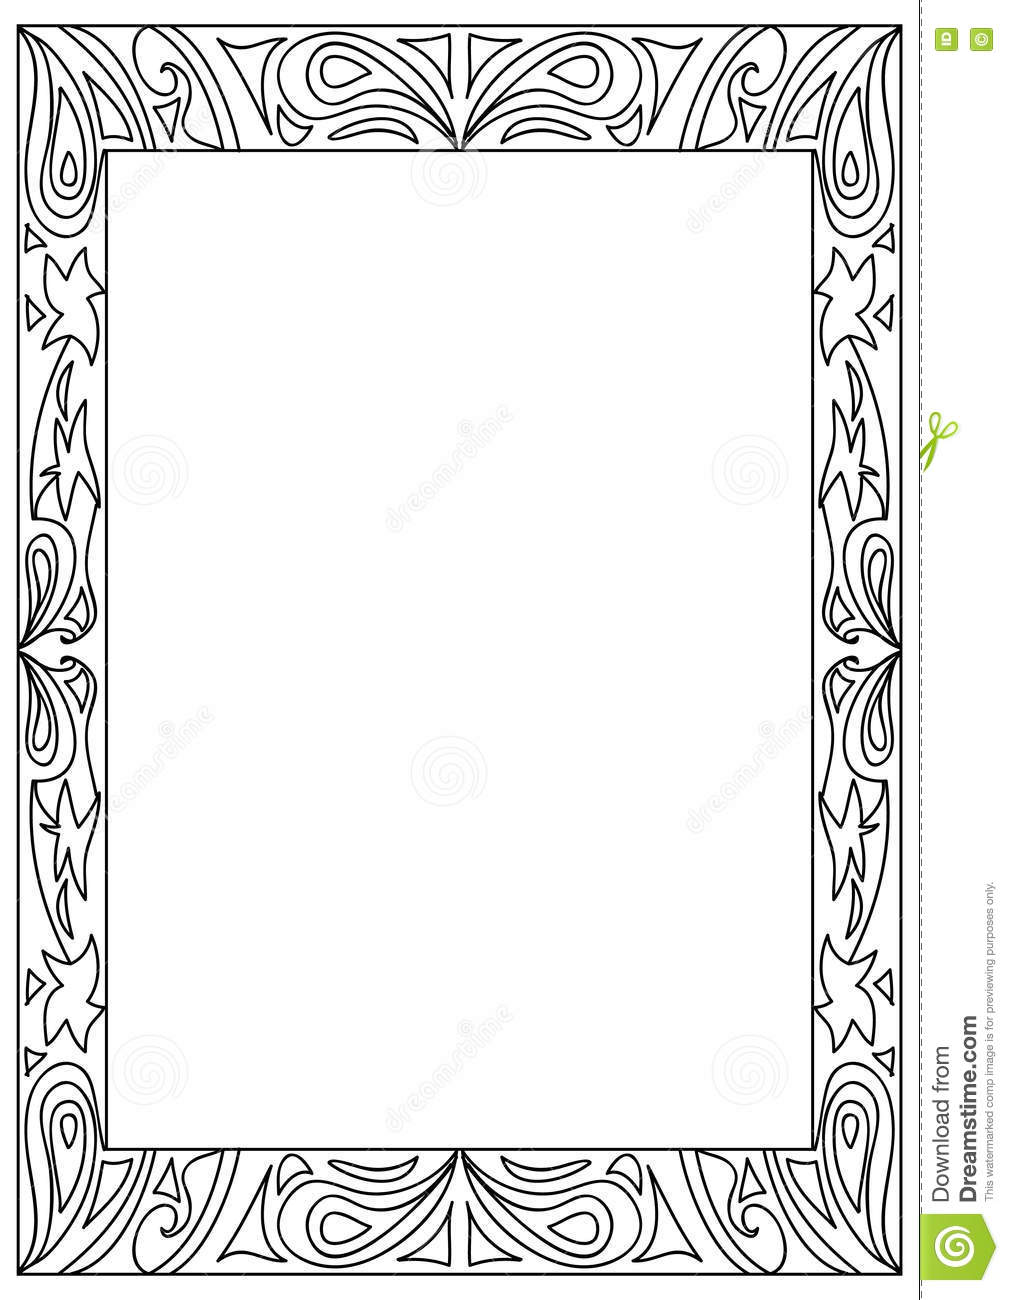 Uncategorized Frame Coloring Page decorative square a4 format coloring page frame isolated on white white